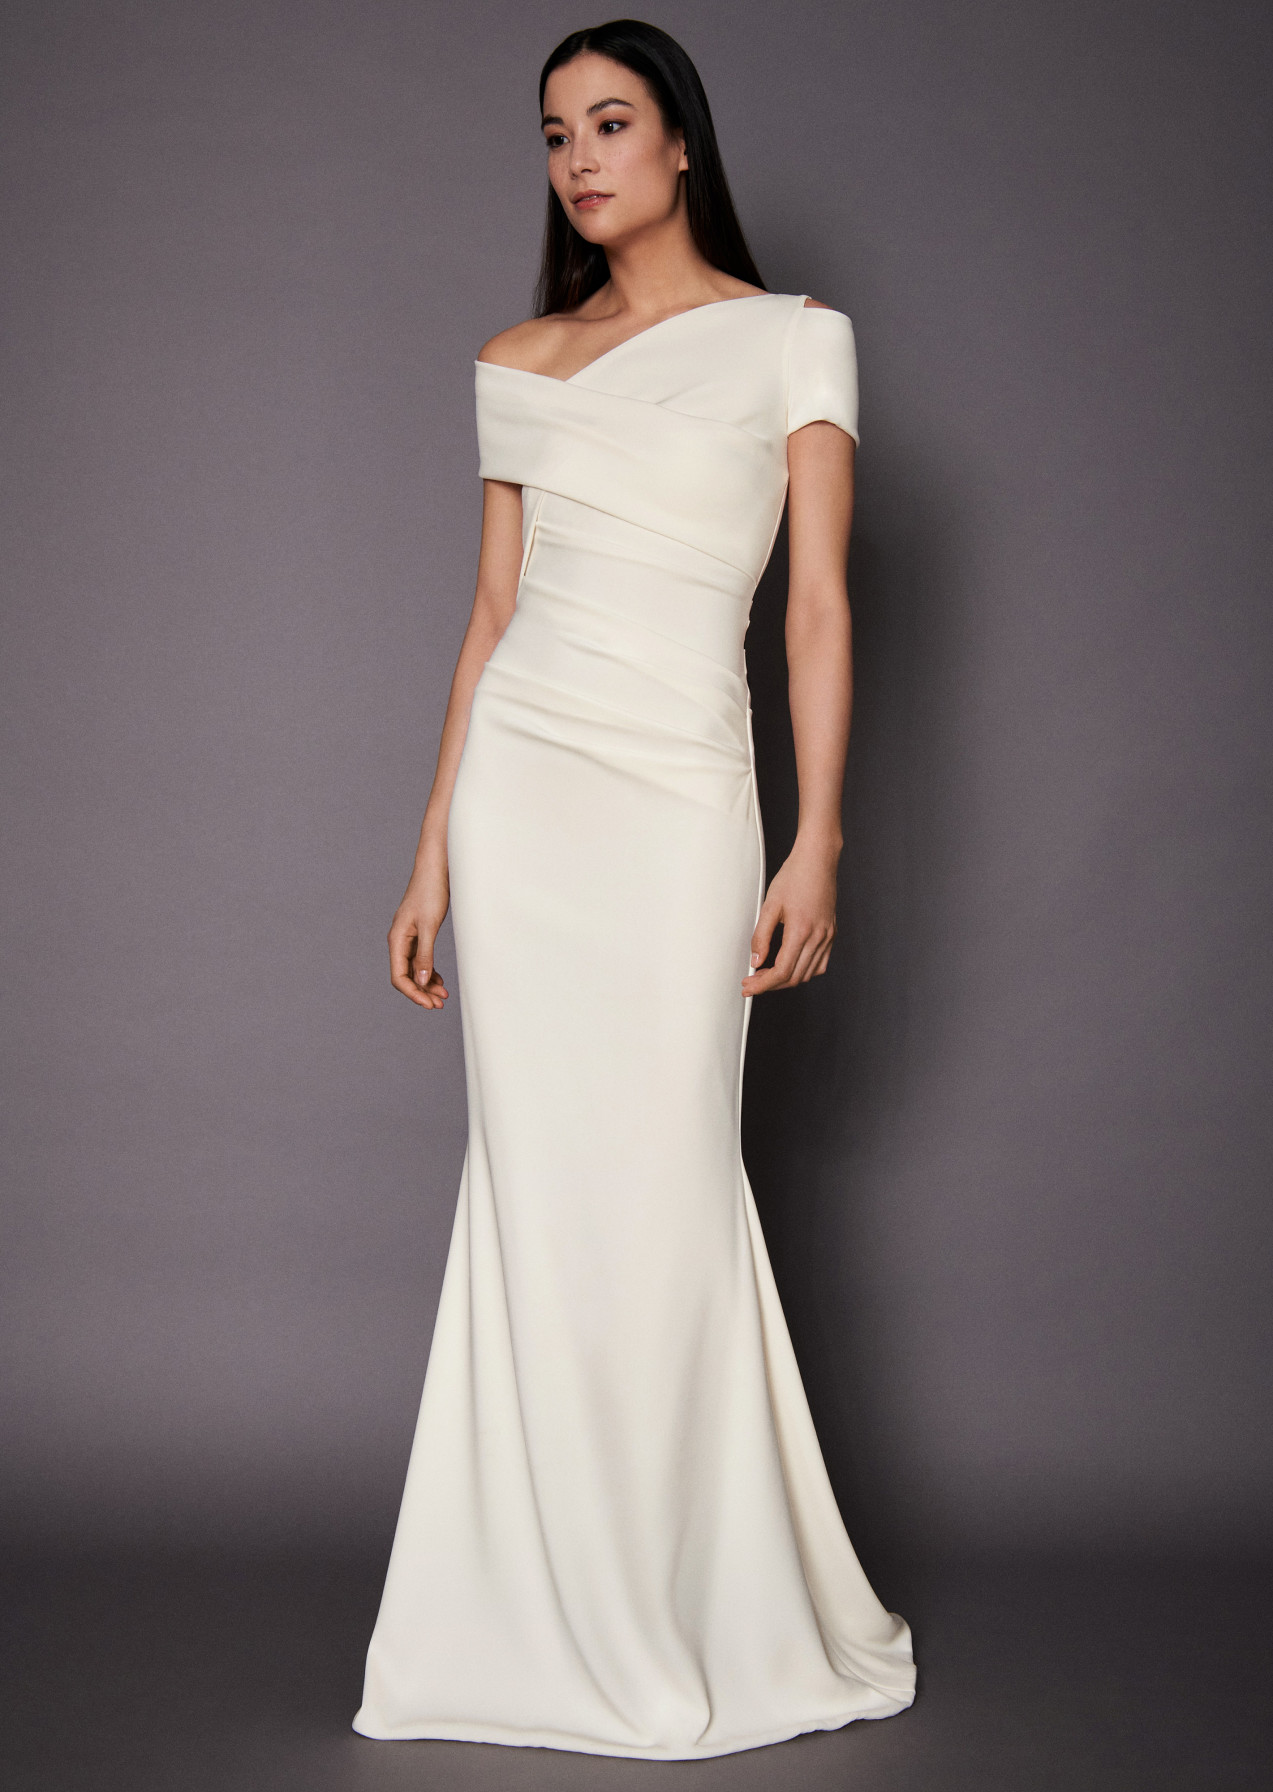 wedding dress bozza11